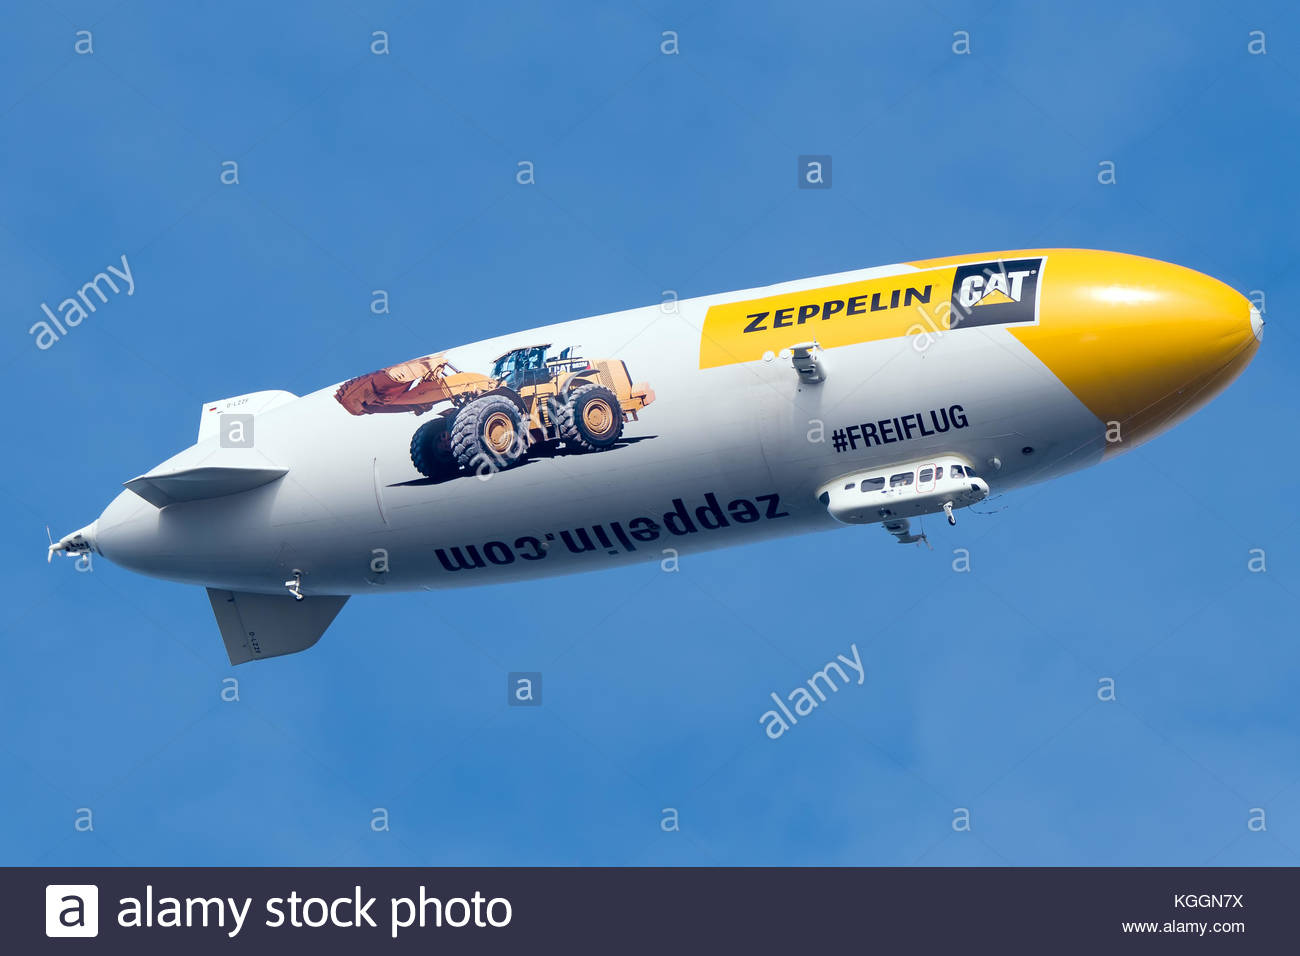 Luftschiff Stock Photos & Luftschiff Stock Images - Alamy